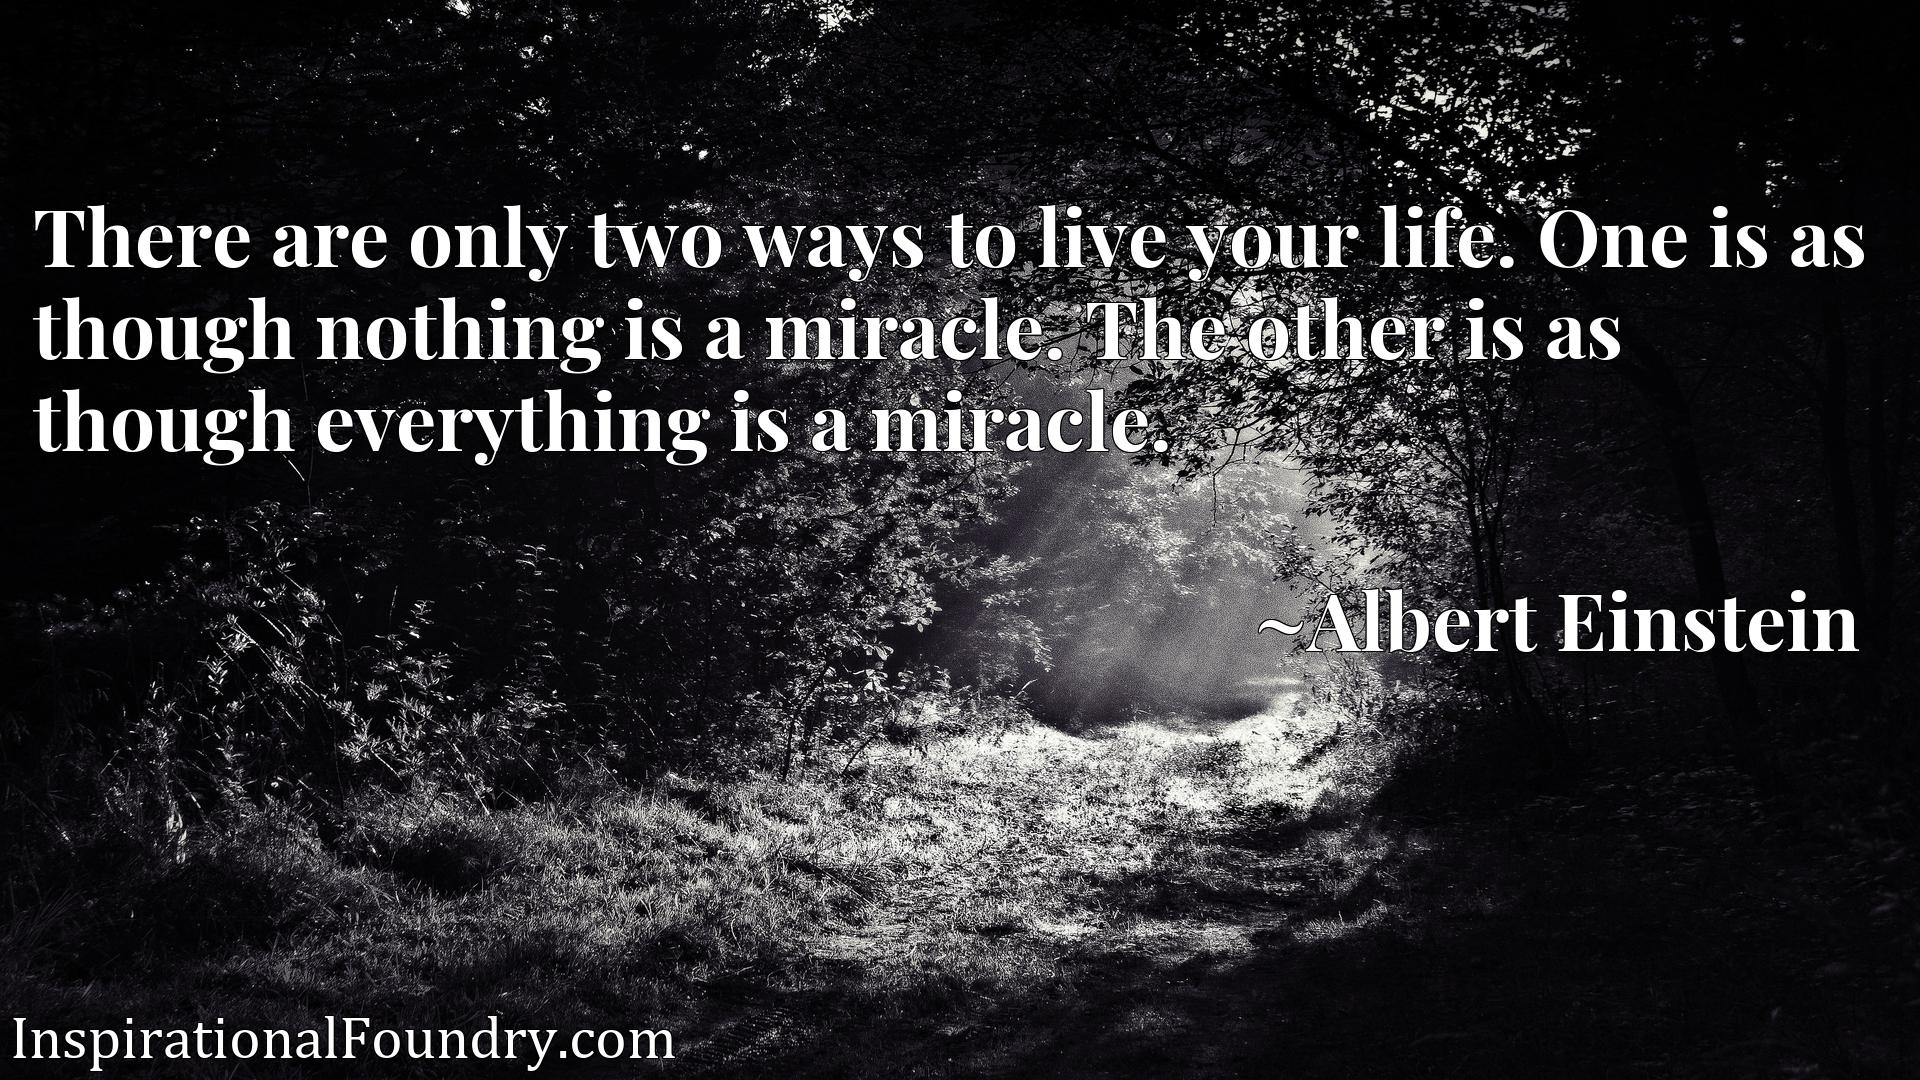 There are only two ways to live your life. One is as though nothing is a miracle. The other is as though everything is a miracle.